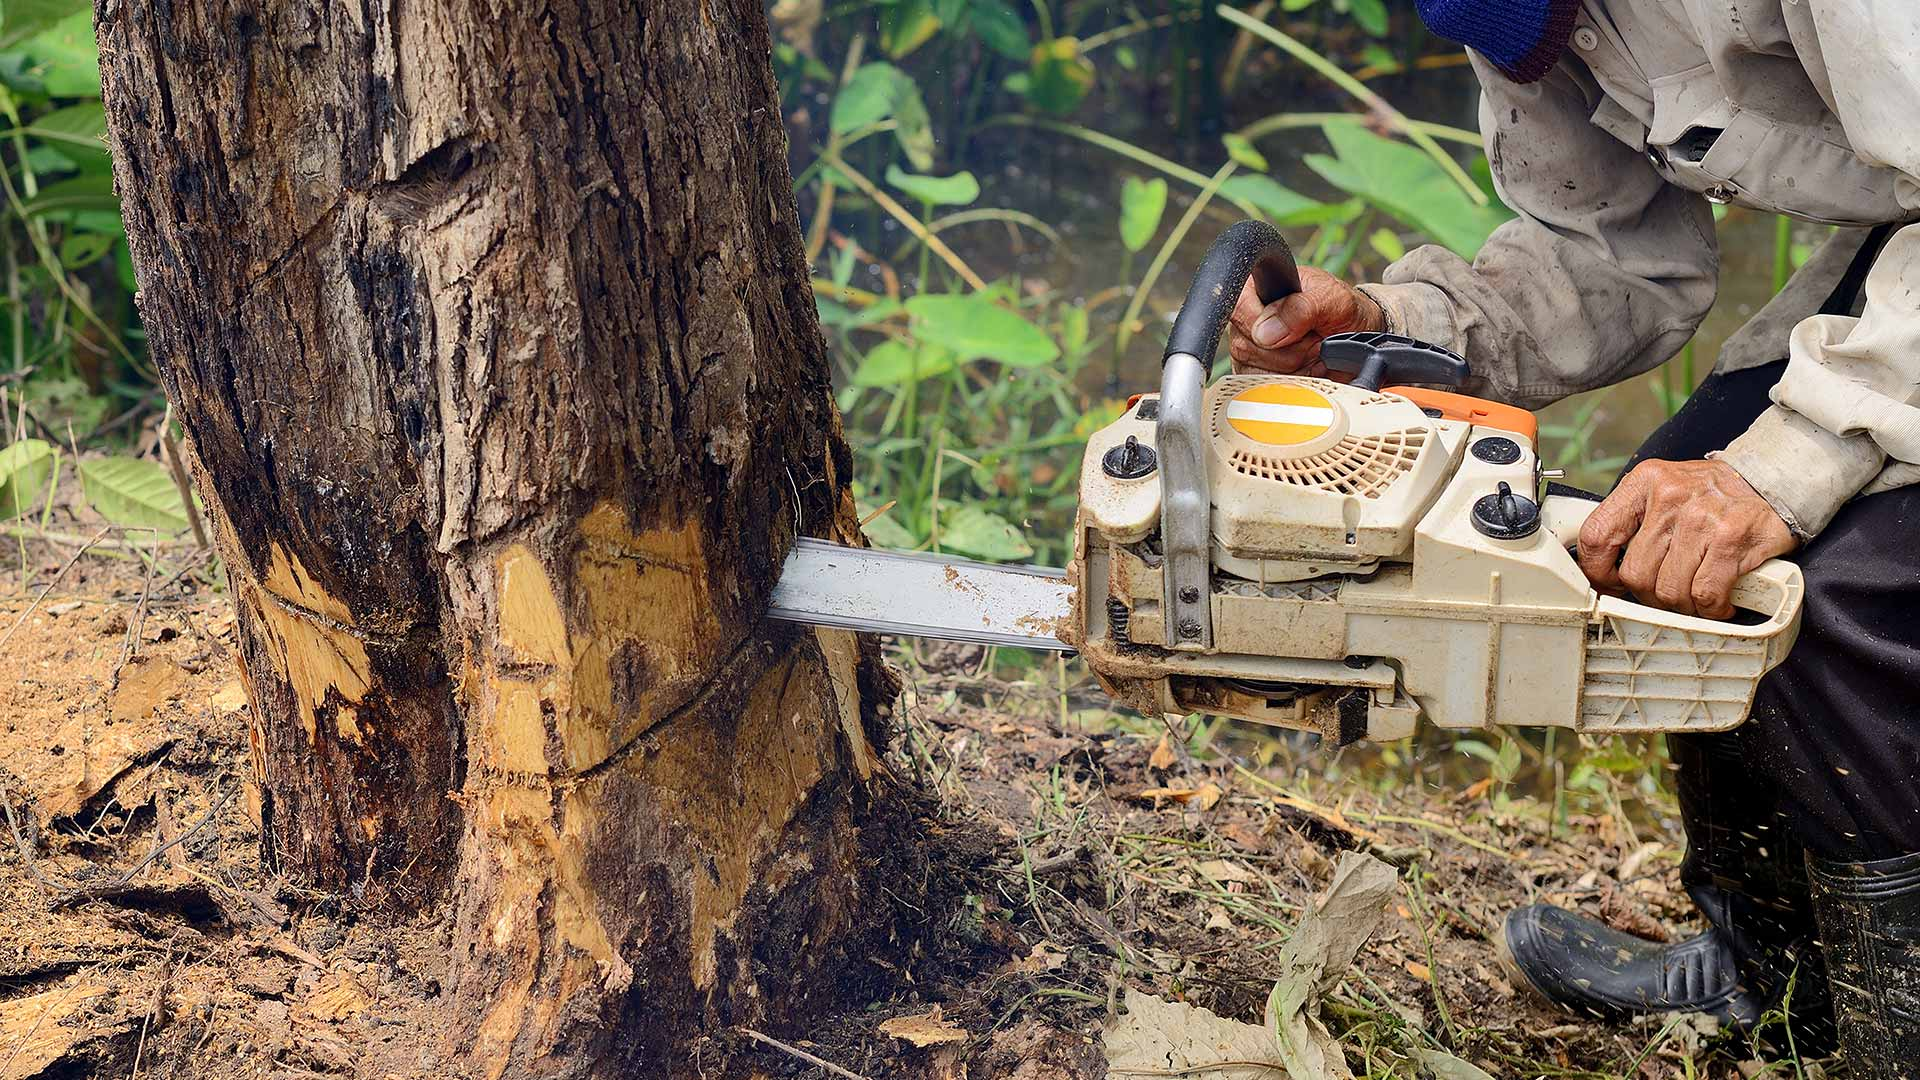 Chainsaw cutting down a dying tree in Haymarket, VA.